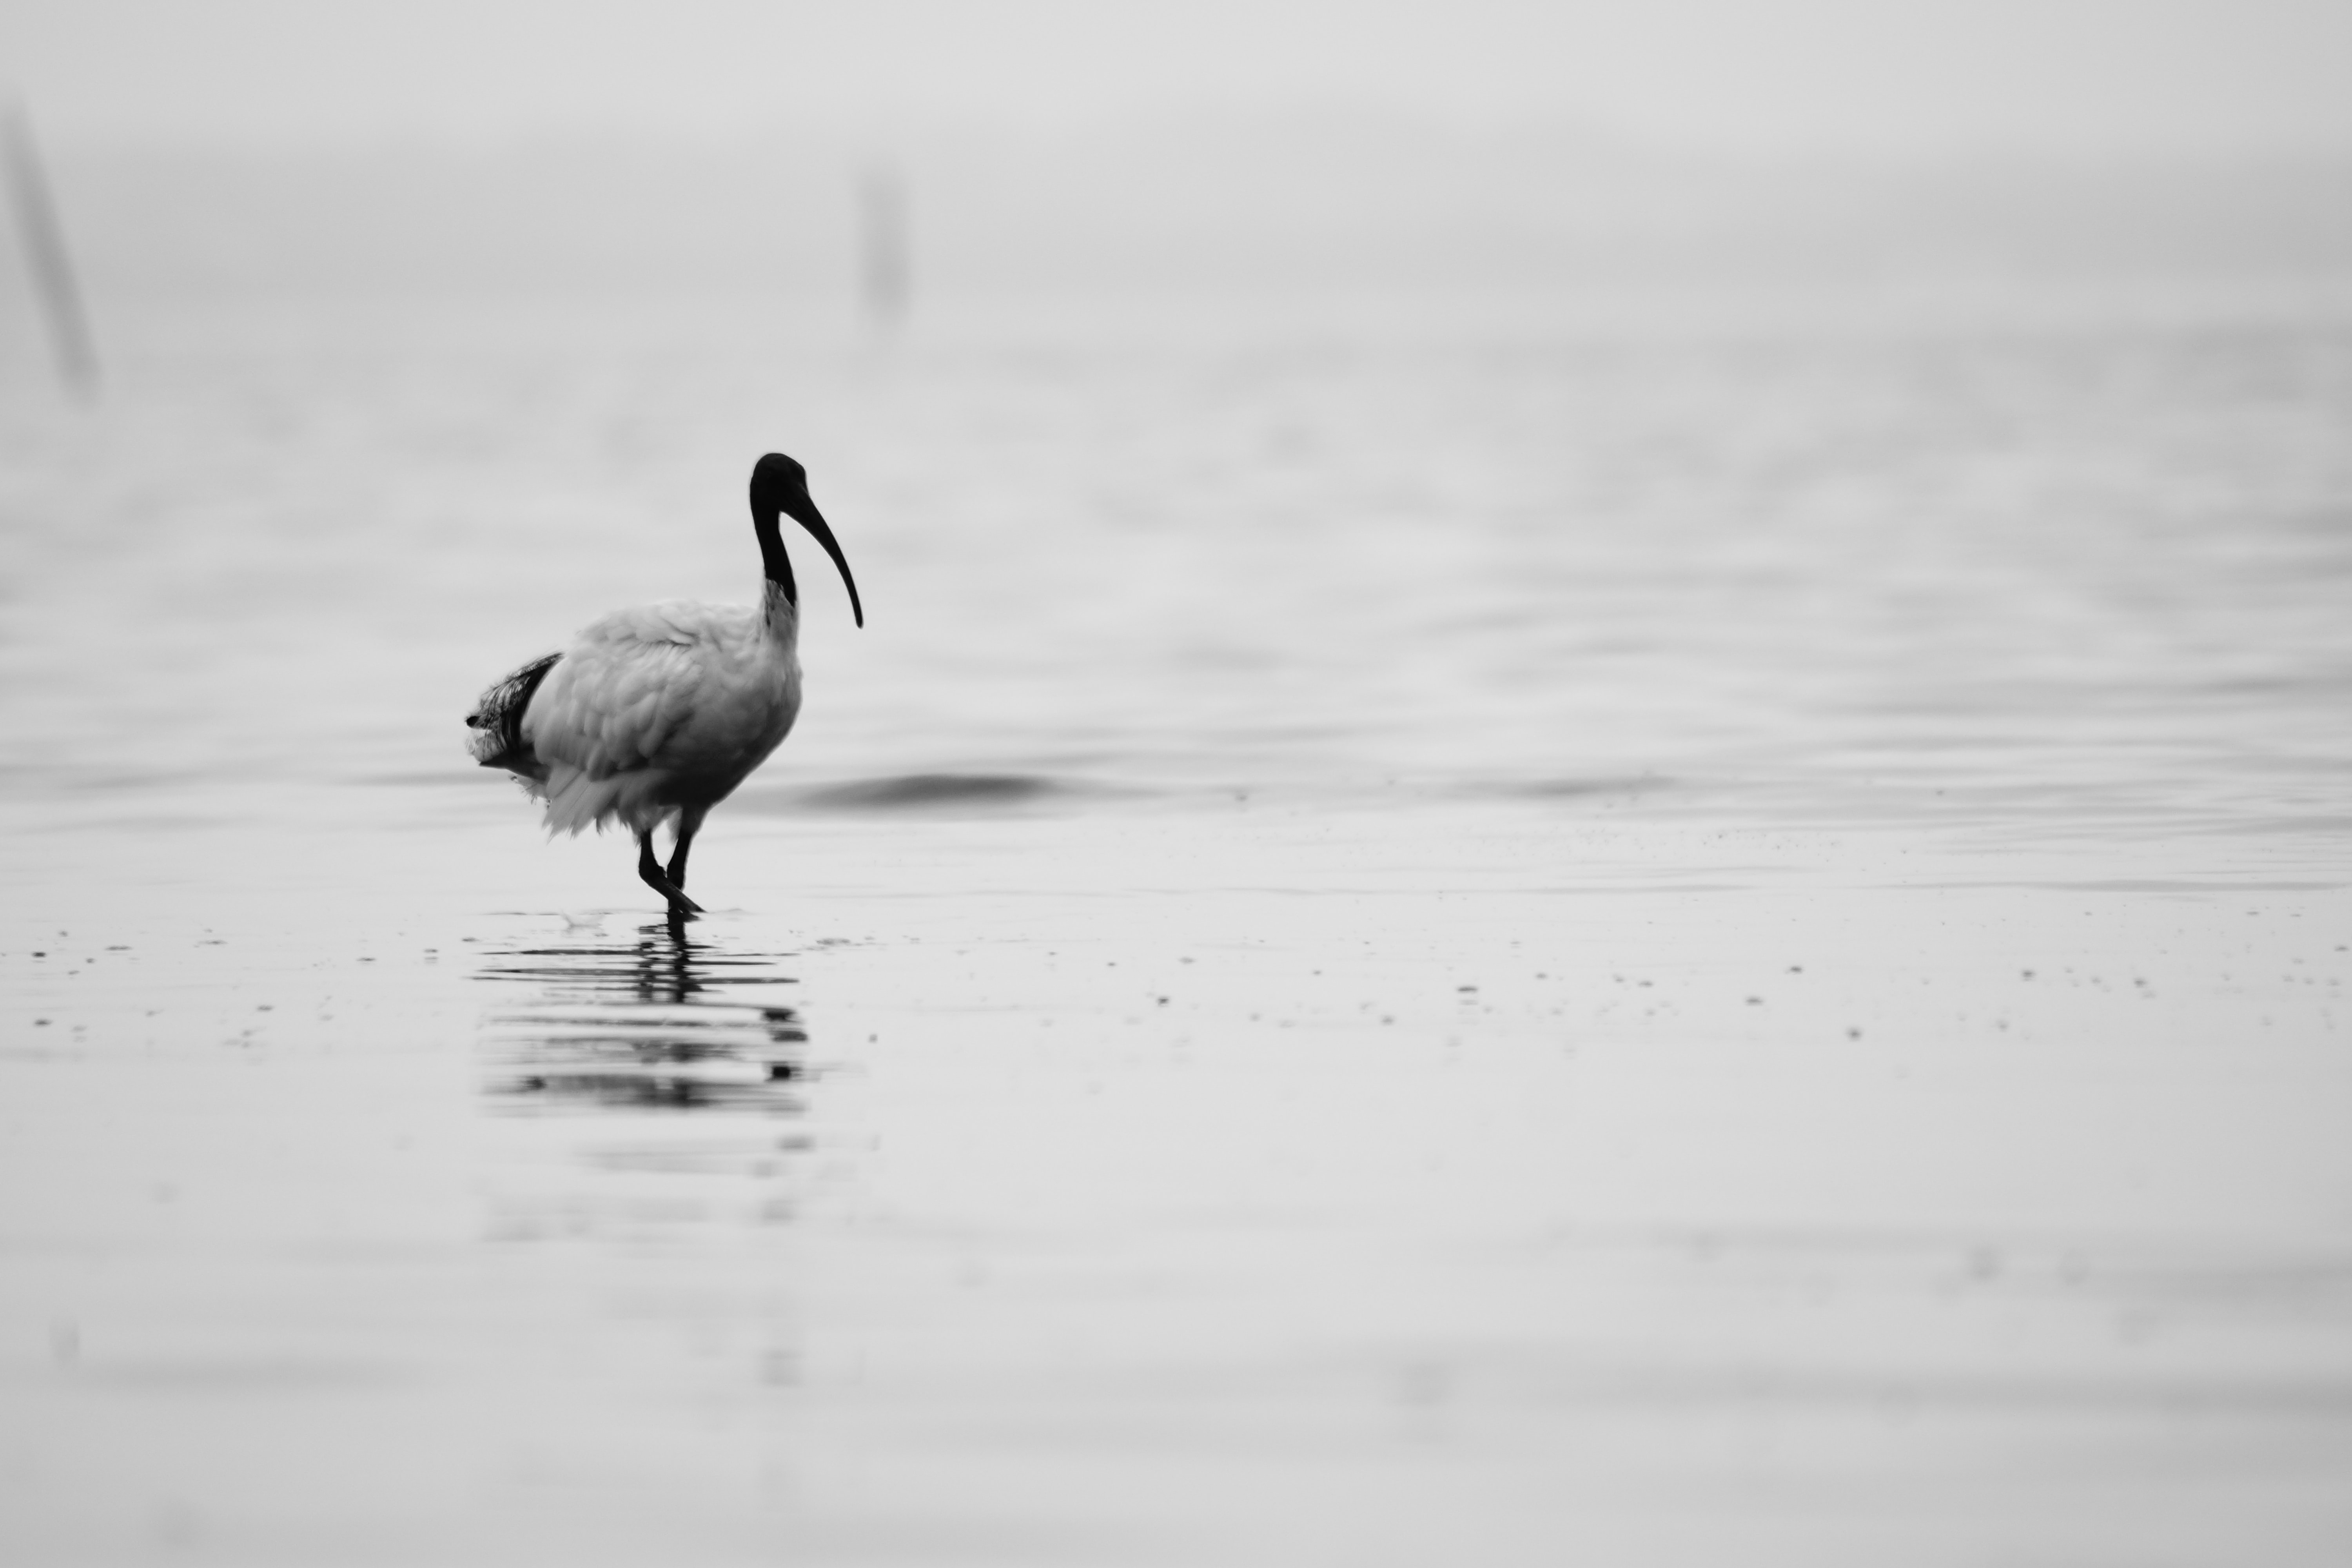 A stork wading through the water on a gray day